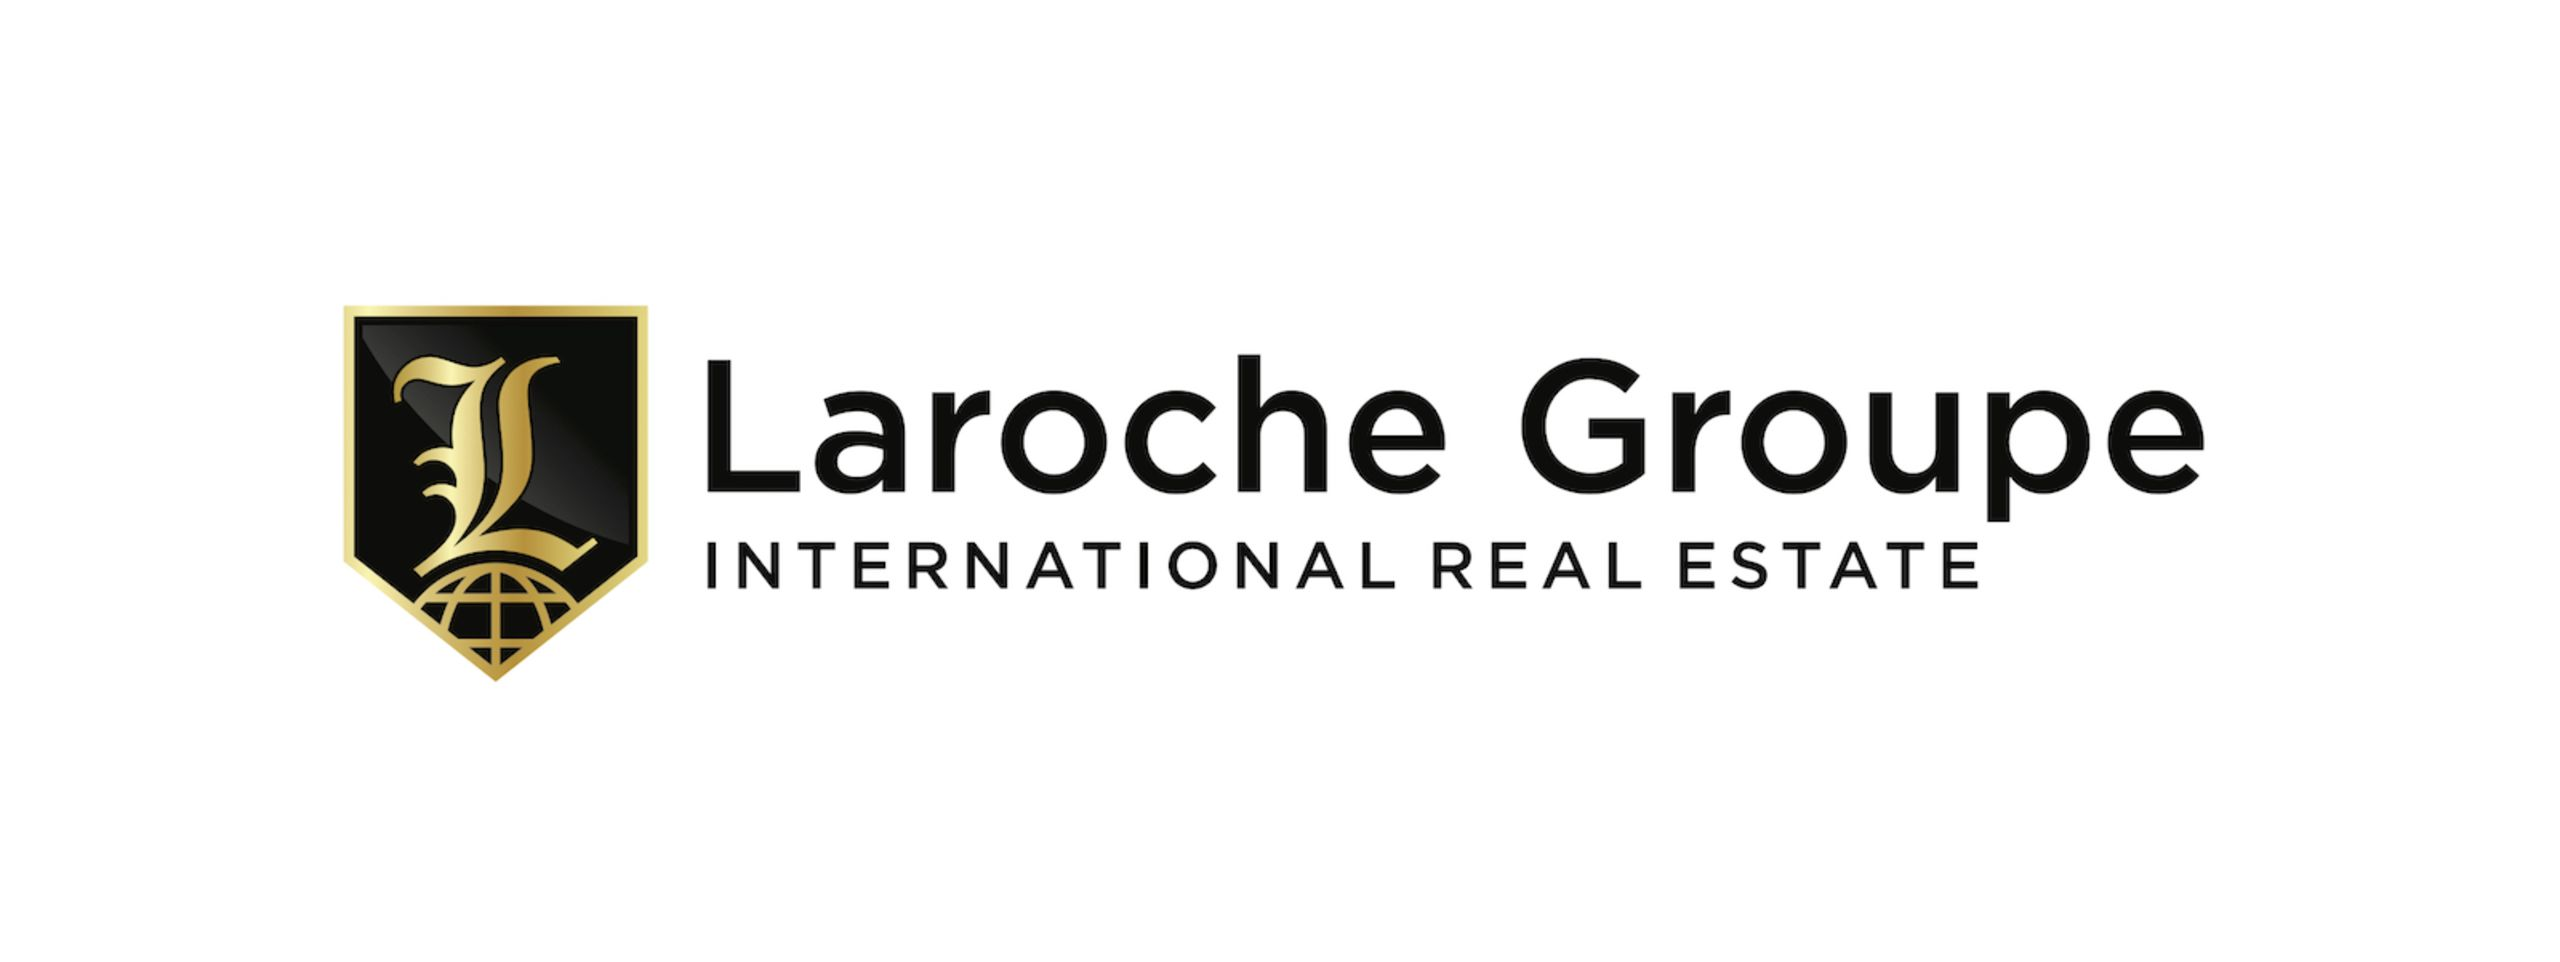 Laroche Groupe Lives Boston + Paris